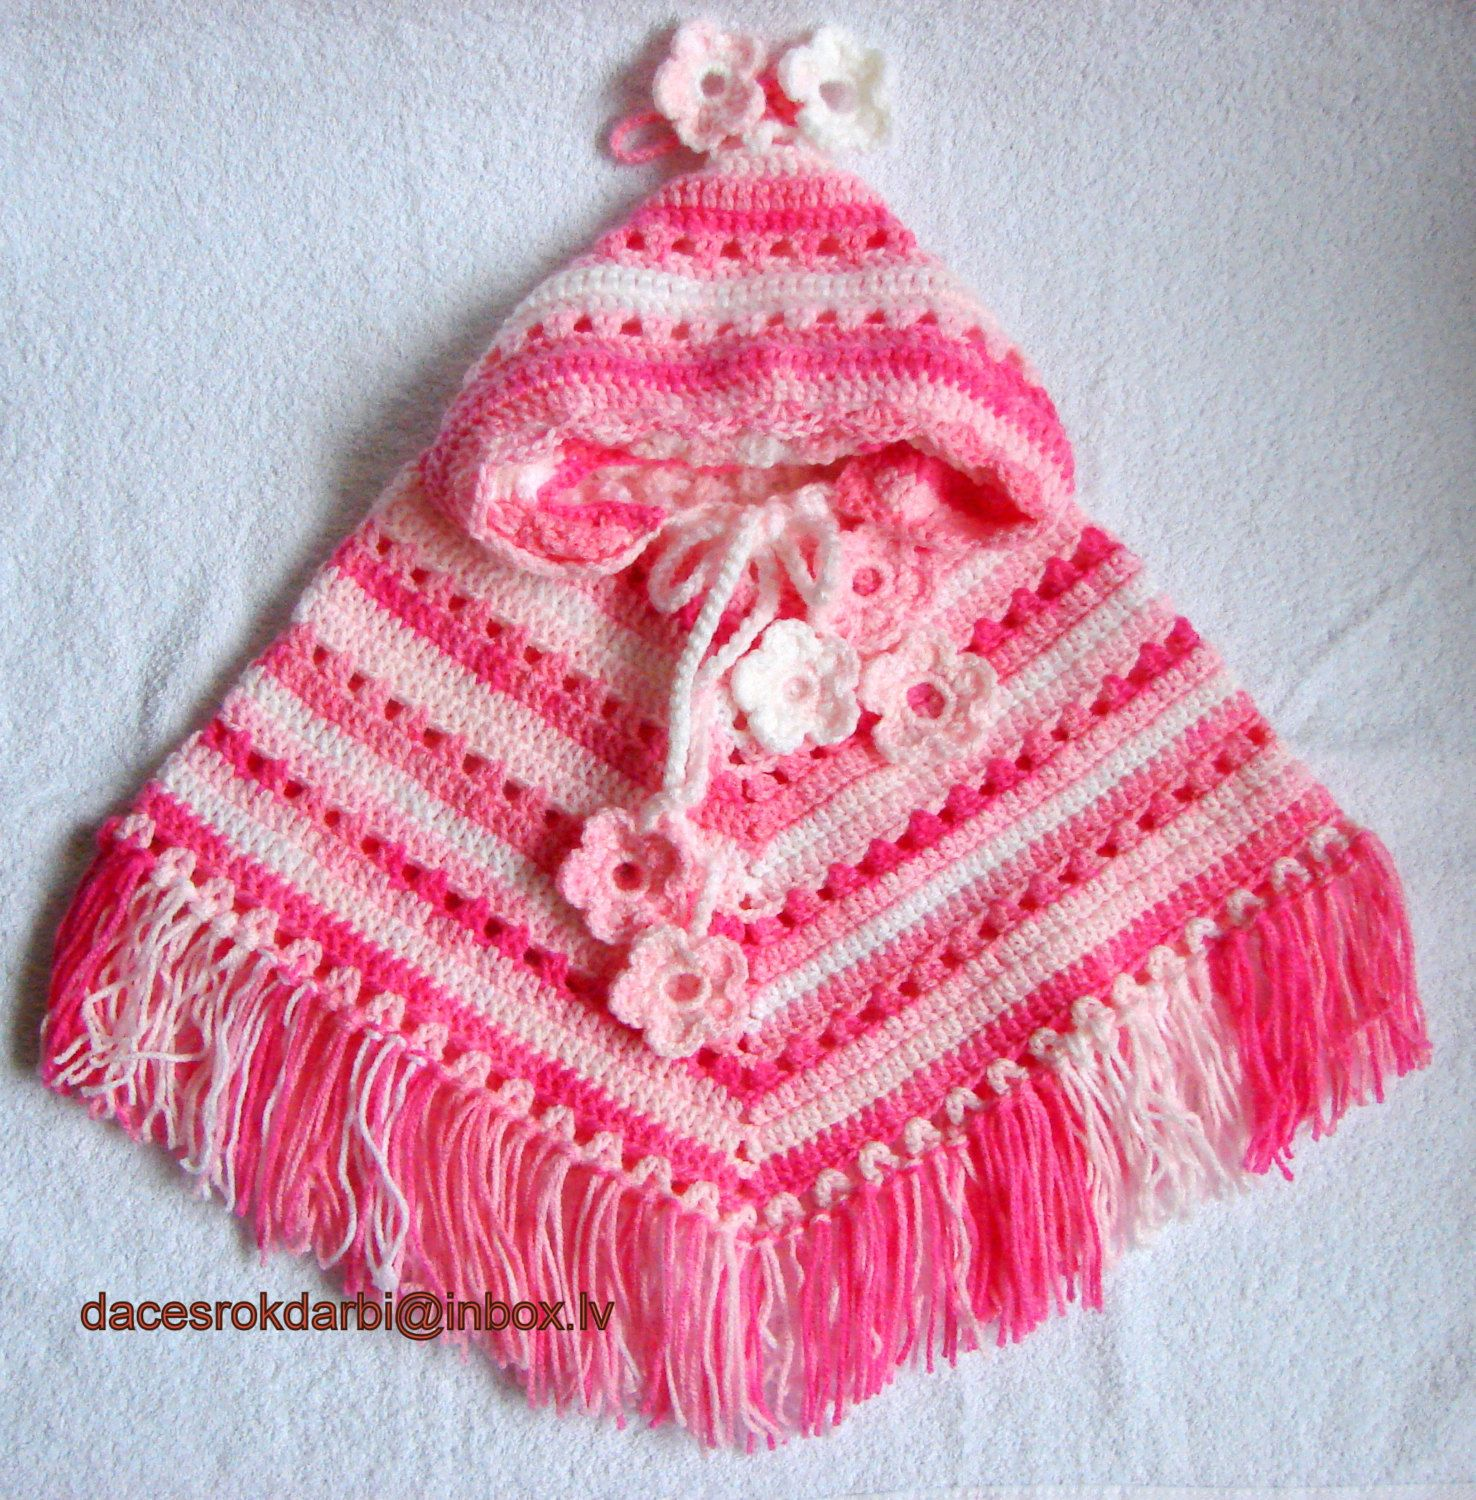 Baby Hooded Poncho Crochet Pattern Baby Girl Crocheted Hooded ...